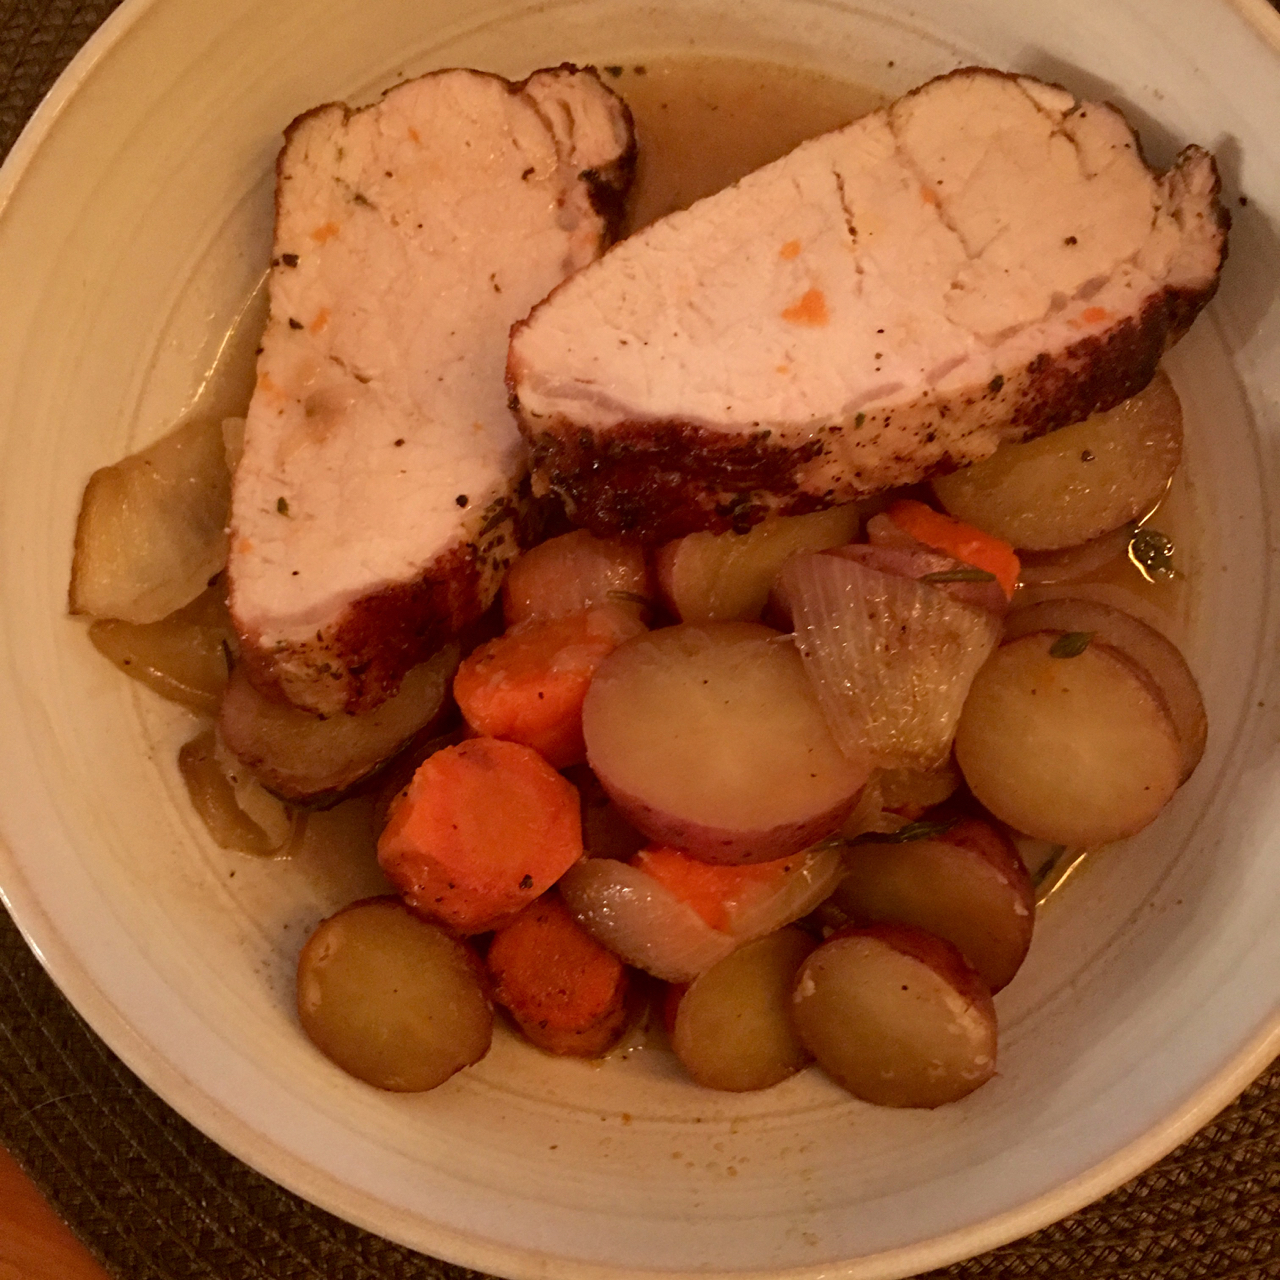 PORK TENDERLOIN WITH ROASTED POTATOES, CARROTS AND ONIONS